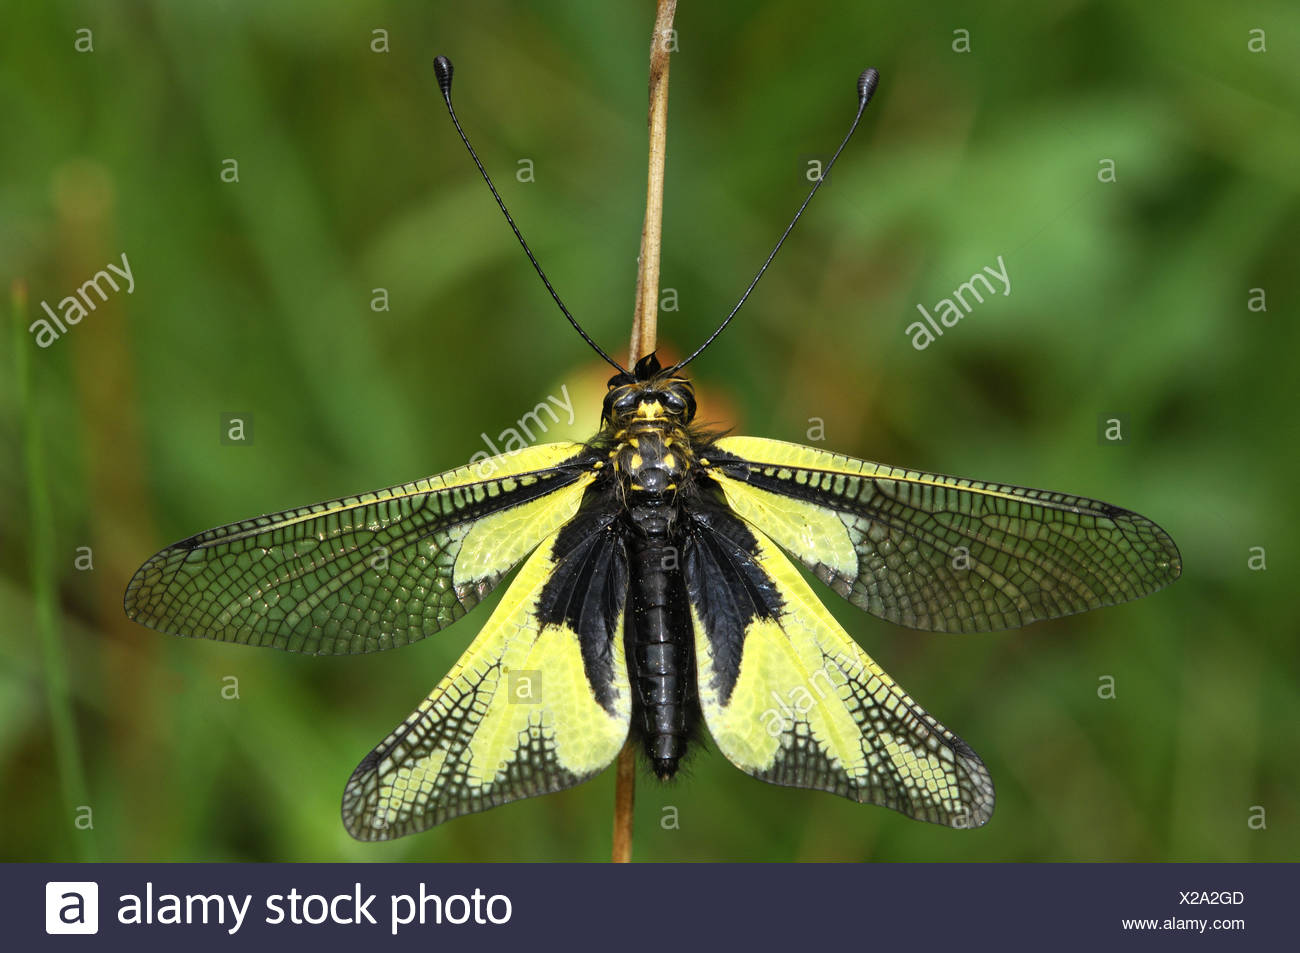 European Owlfly - Stock Image